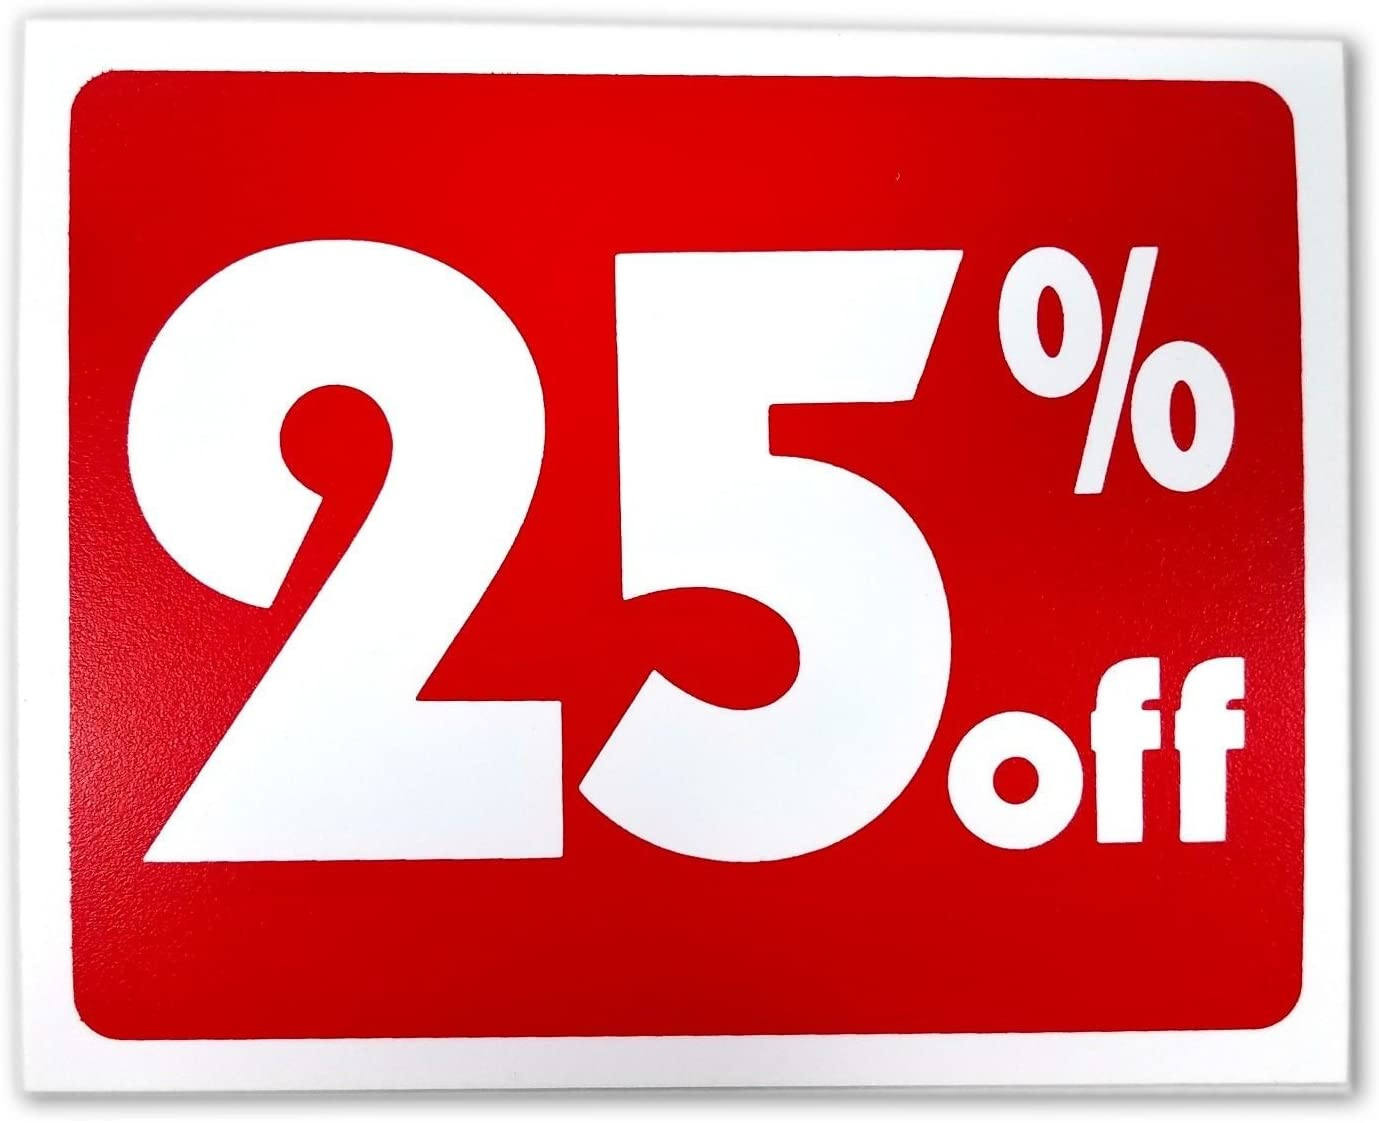 Custom Business Signs (5) Sale 25% Percent Off Business Retail Store Discount Promotion Message Sign Policy Business Signs